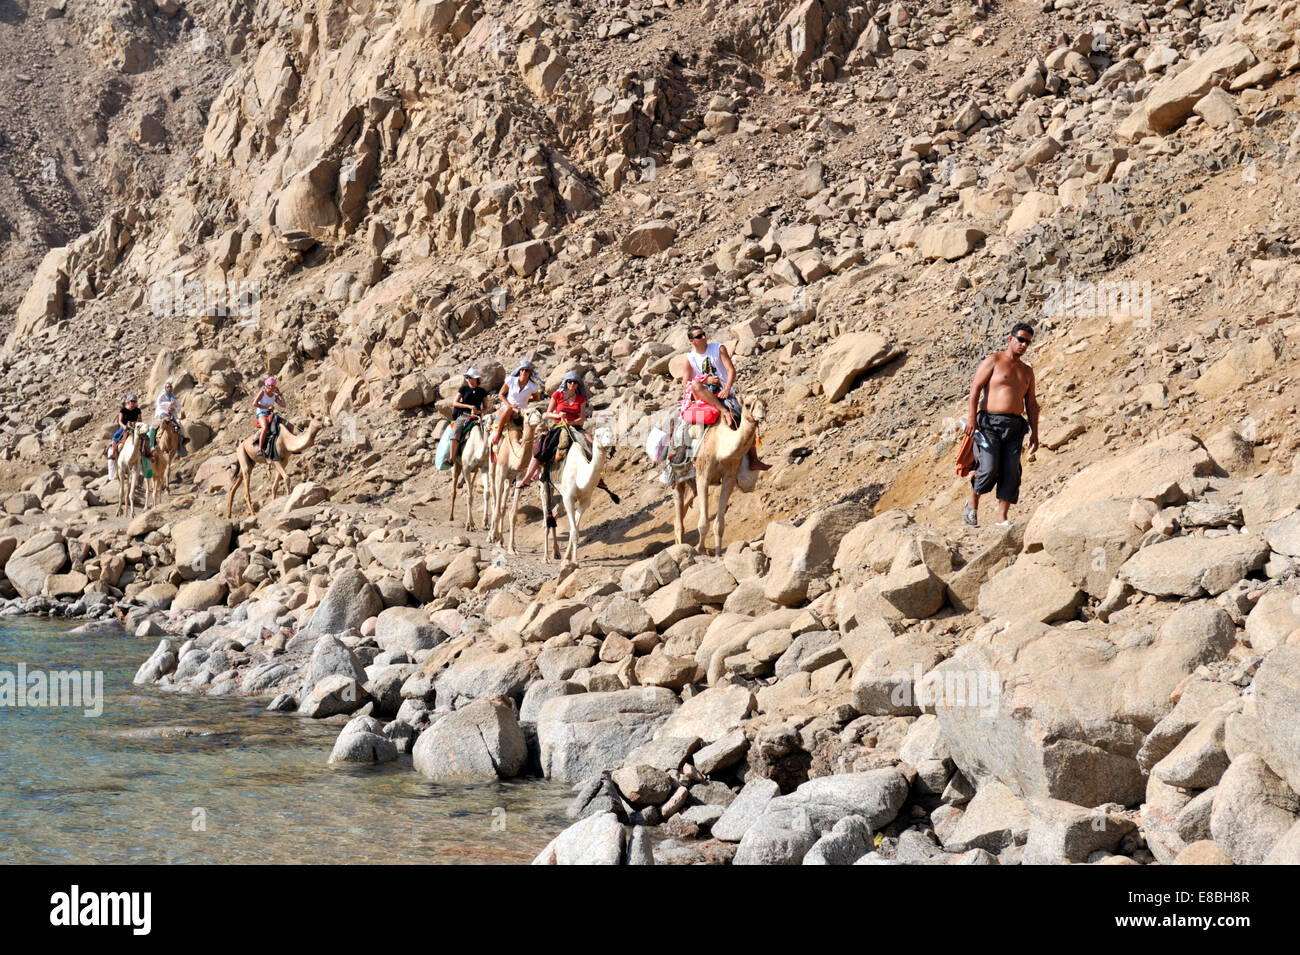 Sinai mountains meet the Gulf of Aqaba tourists on Bedouin camel trek north from Dahab to Ras Malah in southern - Stock Image